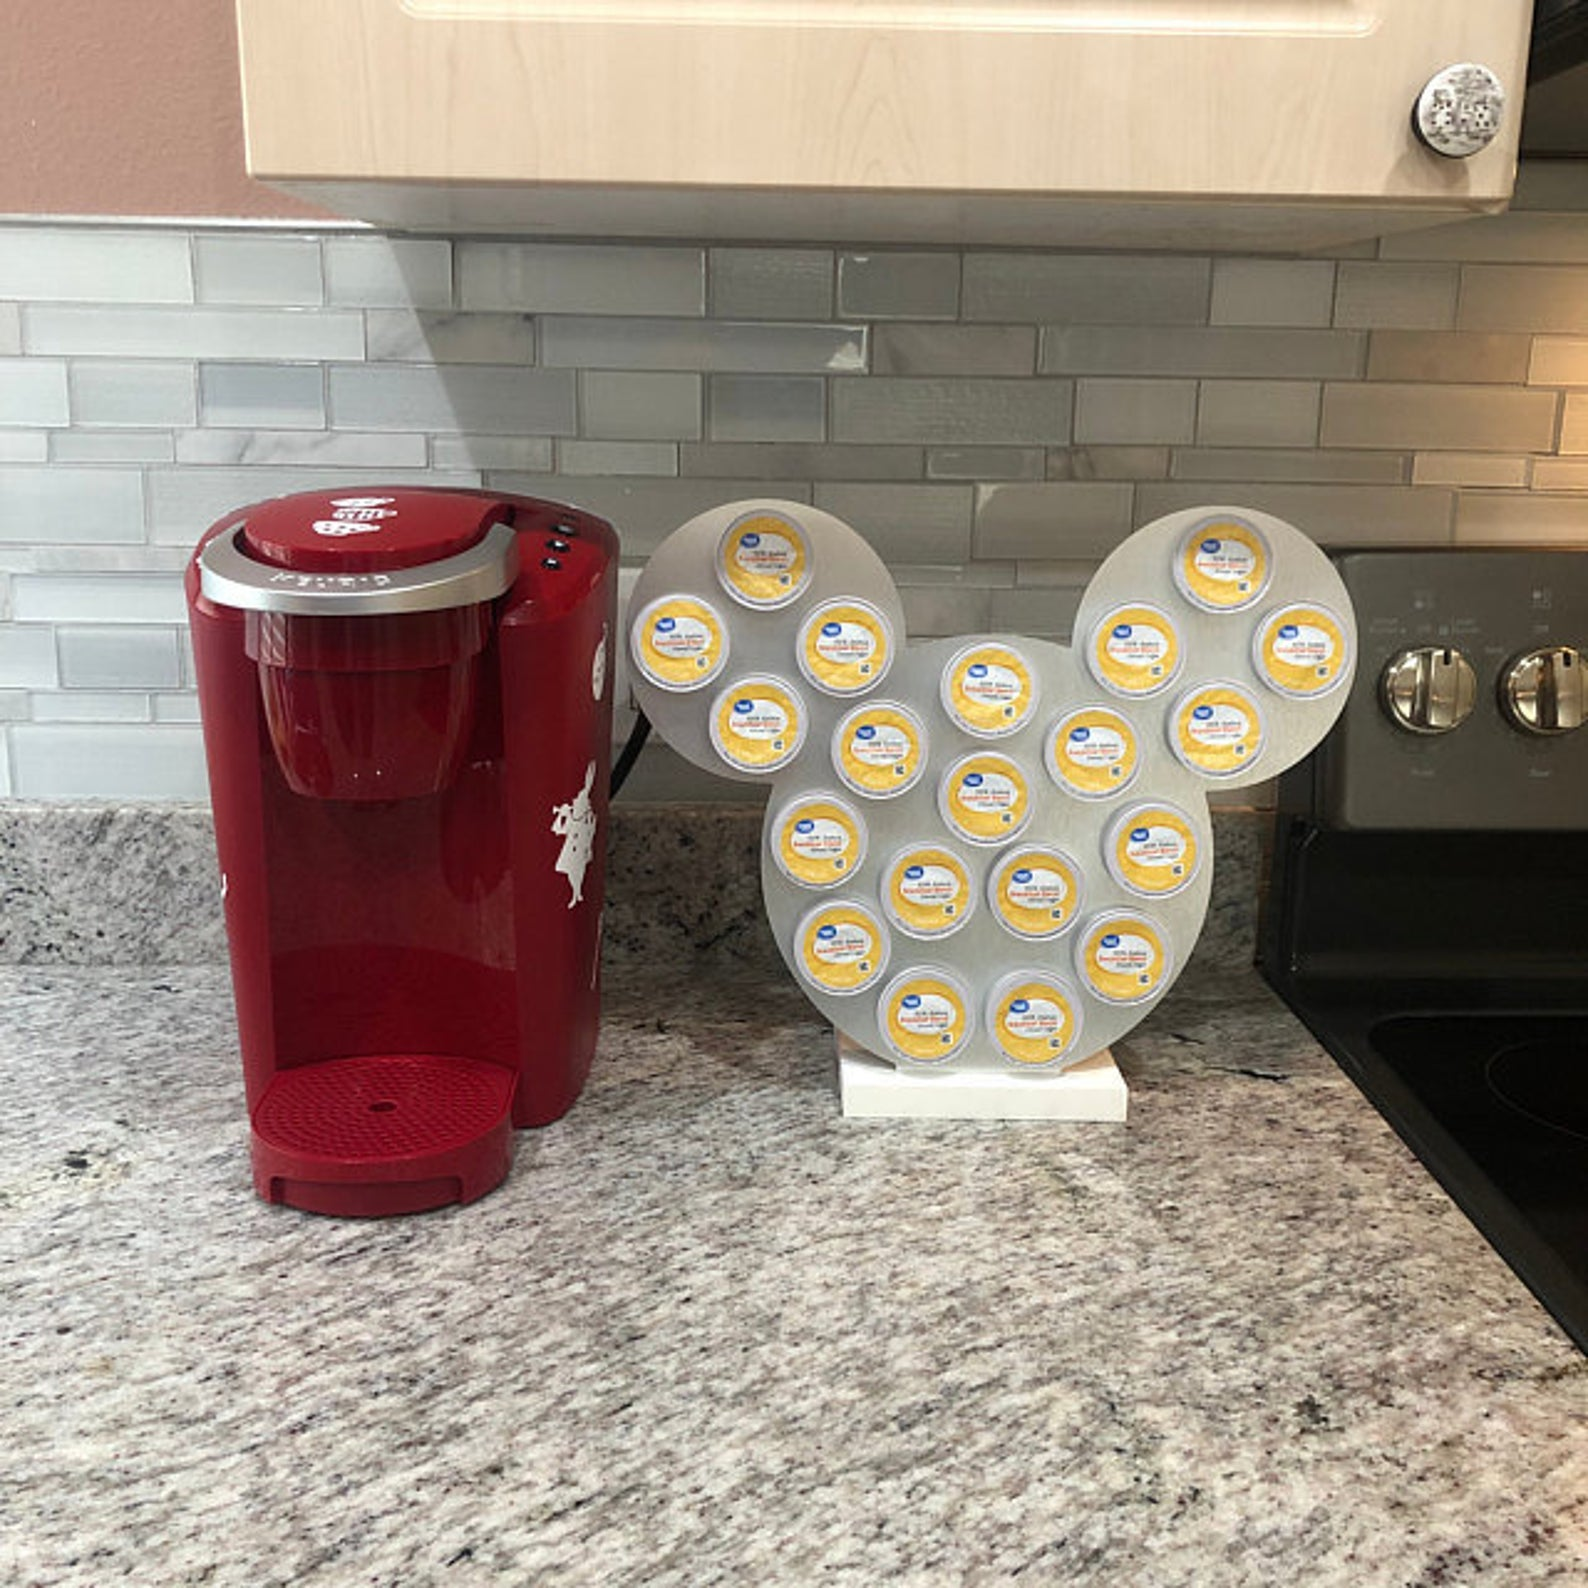 a silver mickey-shaped k-cup holder next to a keurig machine